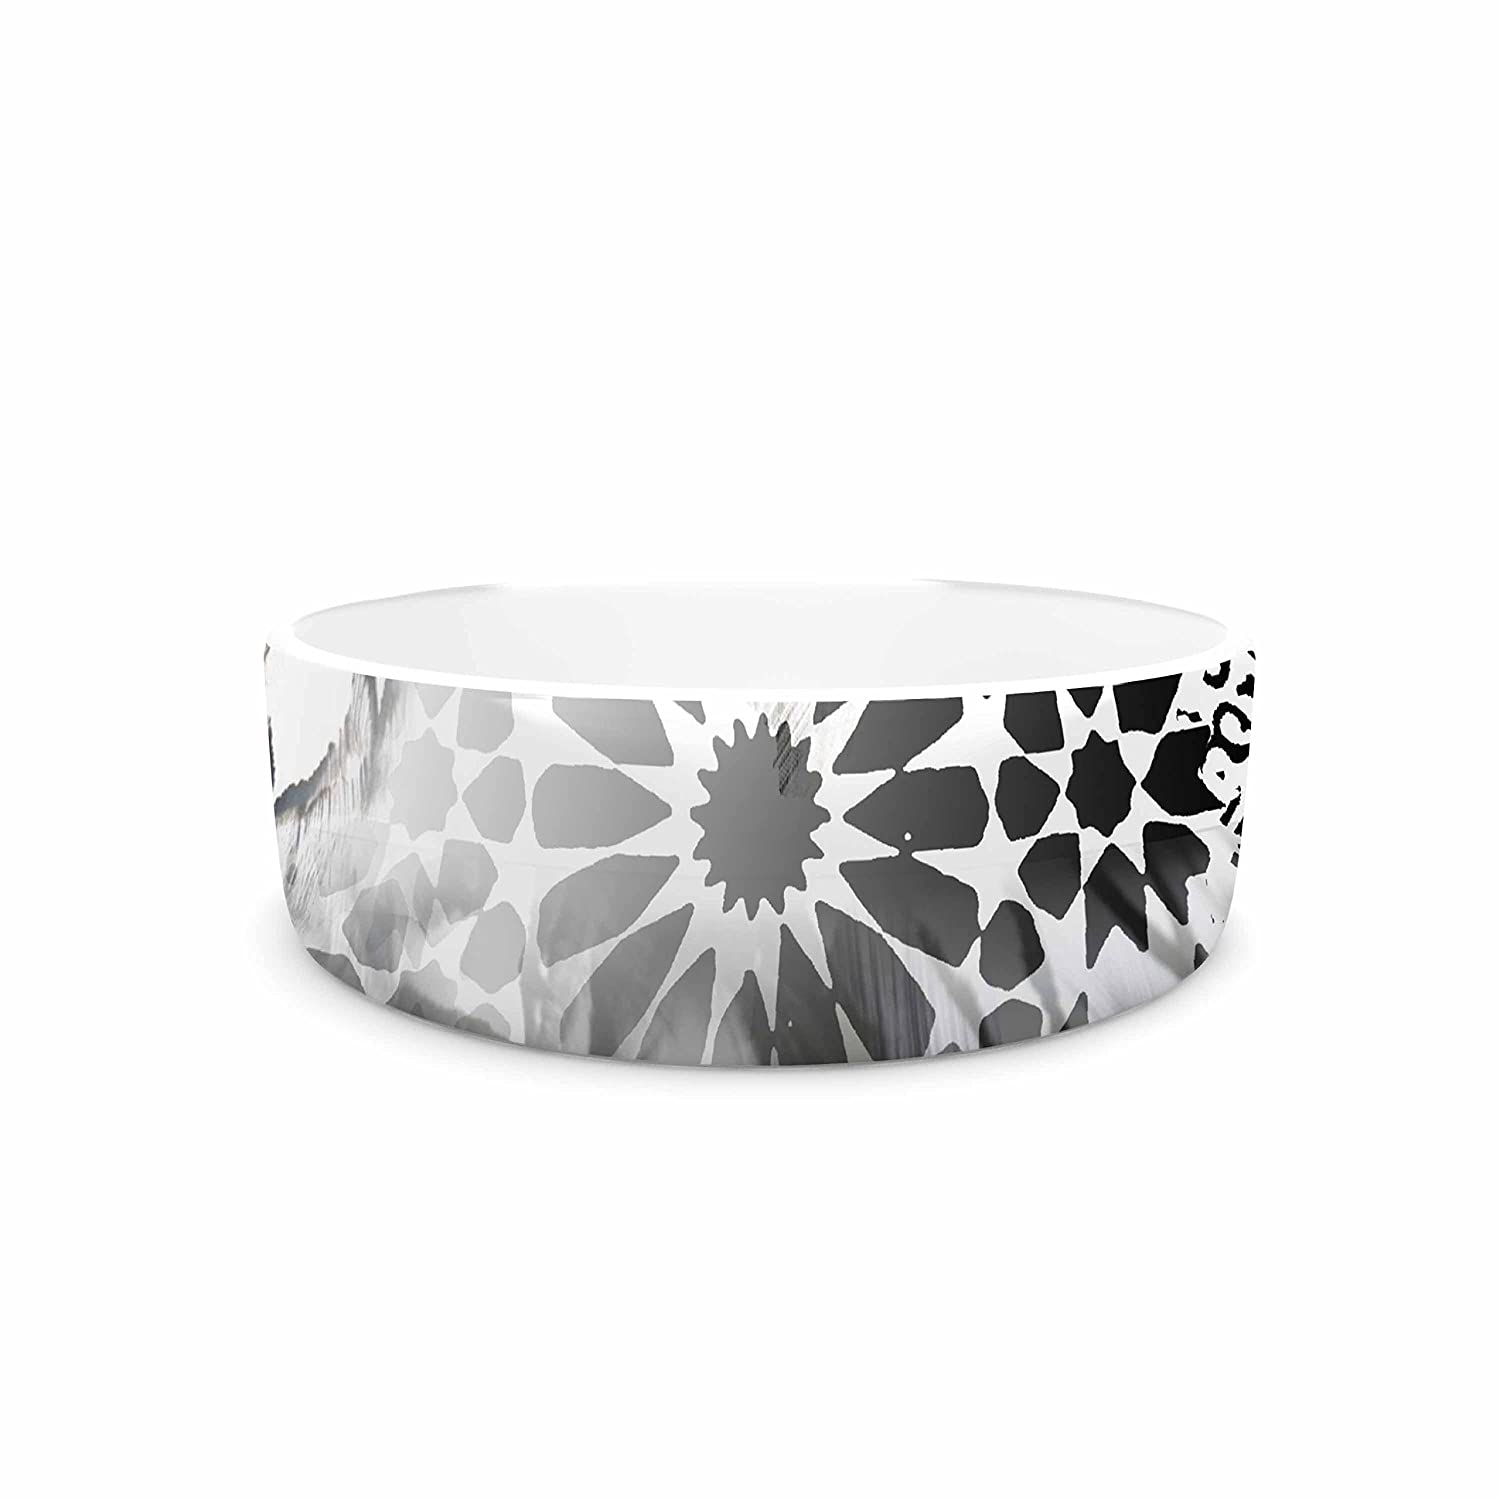 KESS InHouse Victoria Krupp Out of Mgoldcco  Black Abstract Pet Bowl, 7